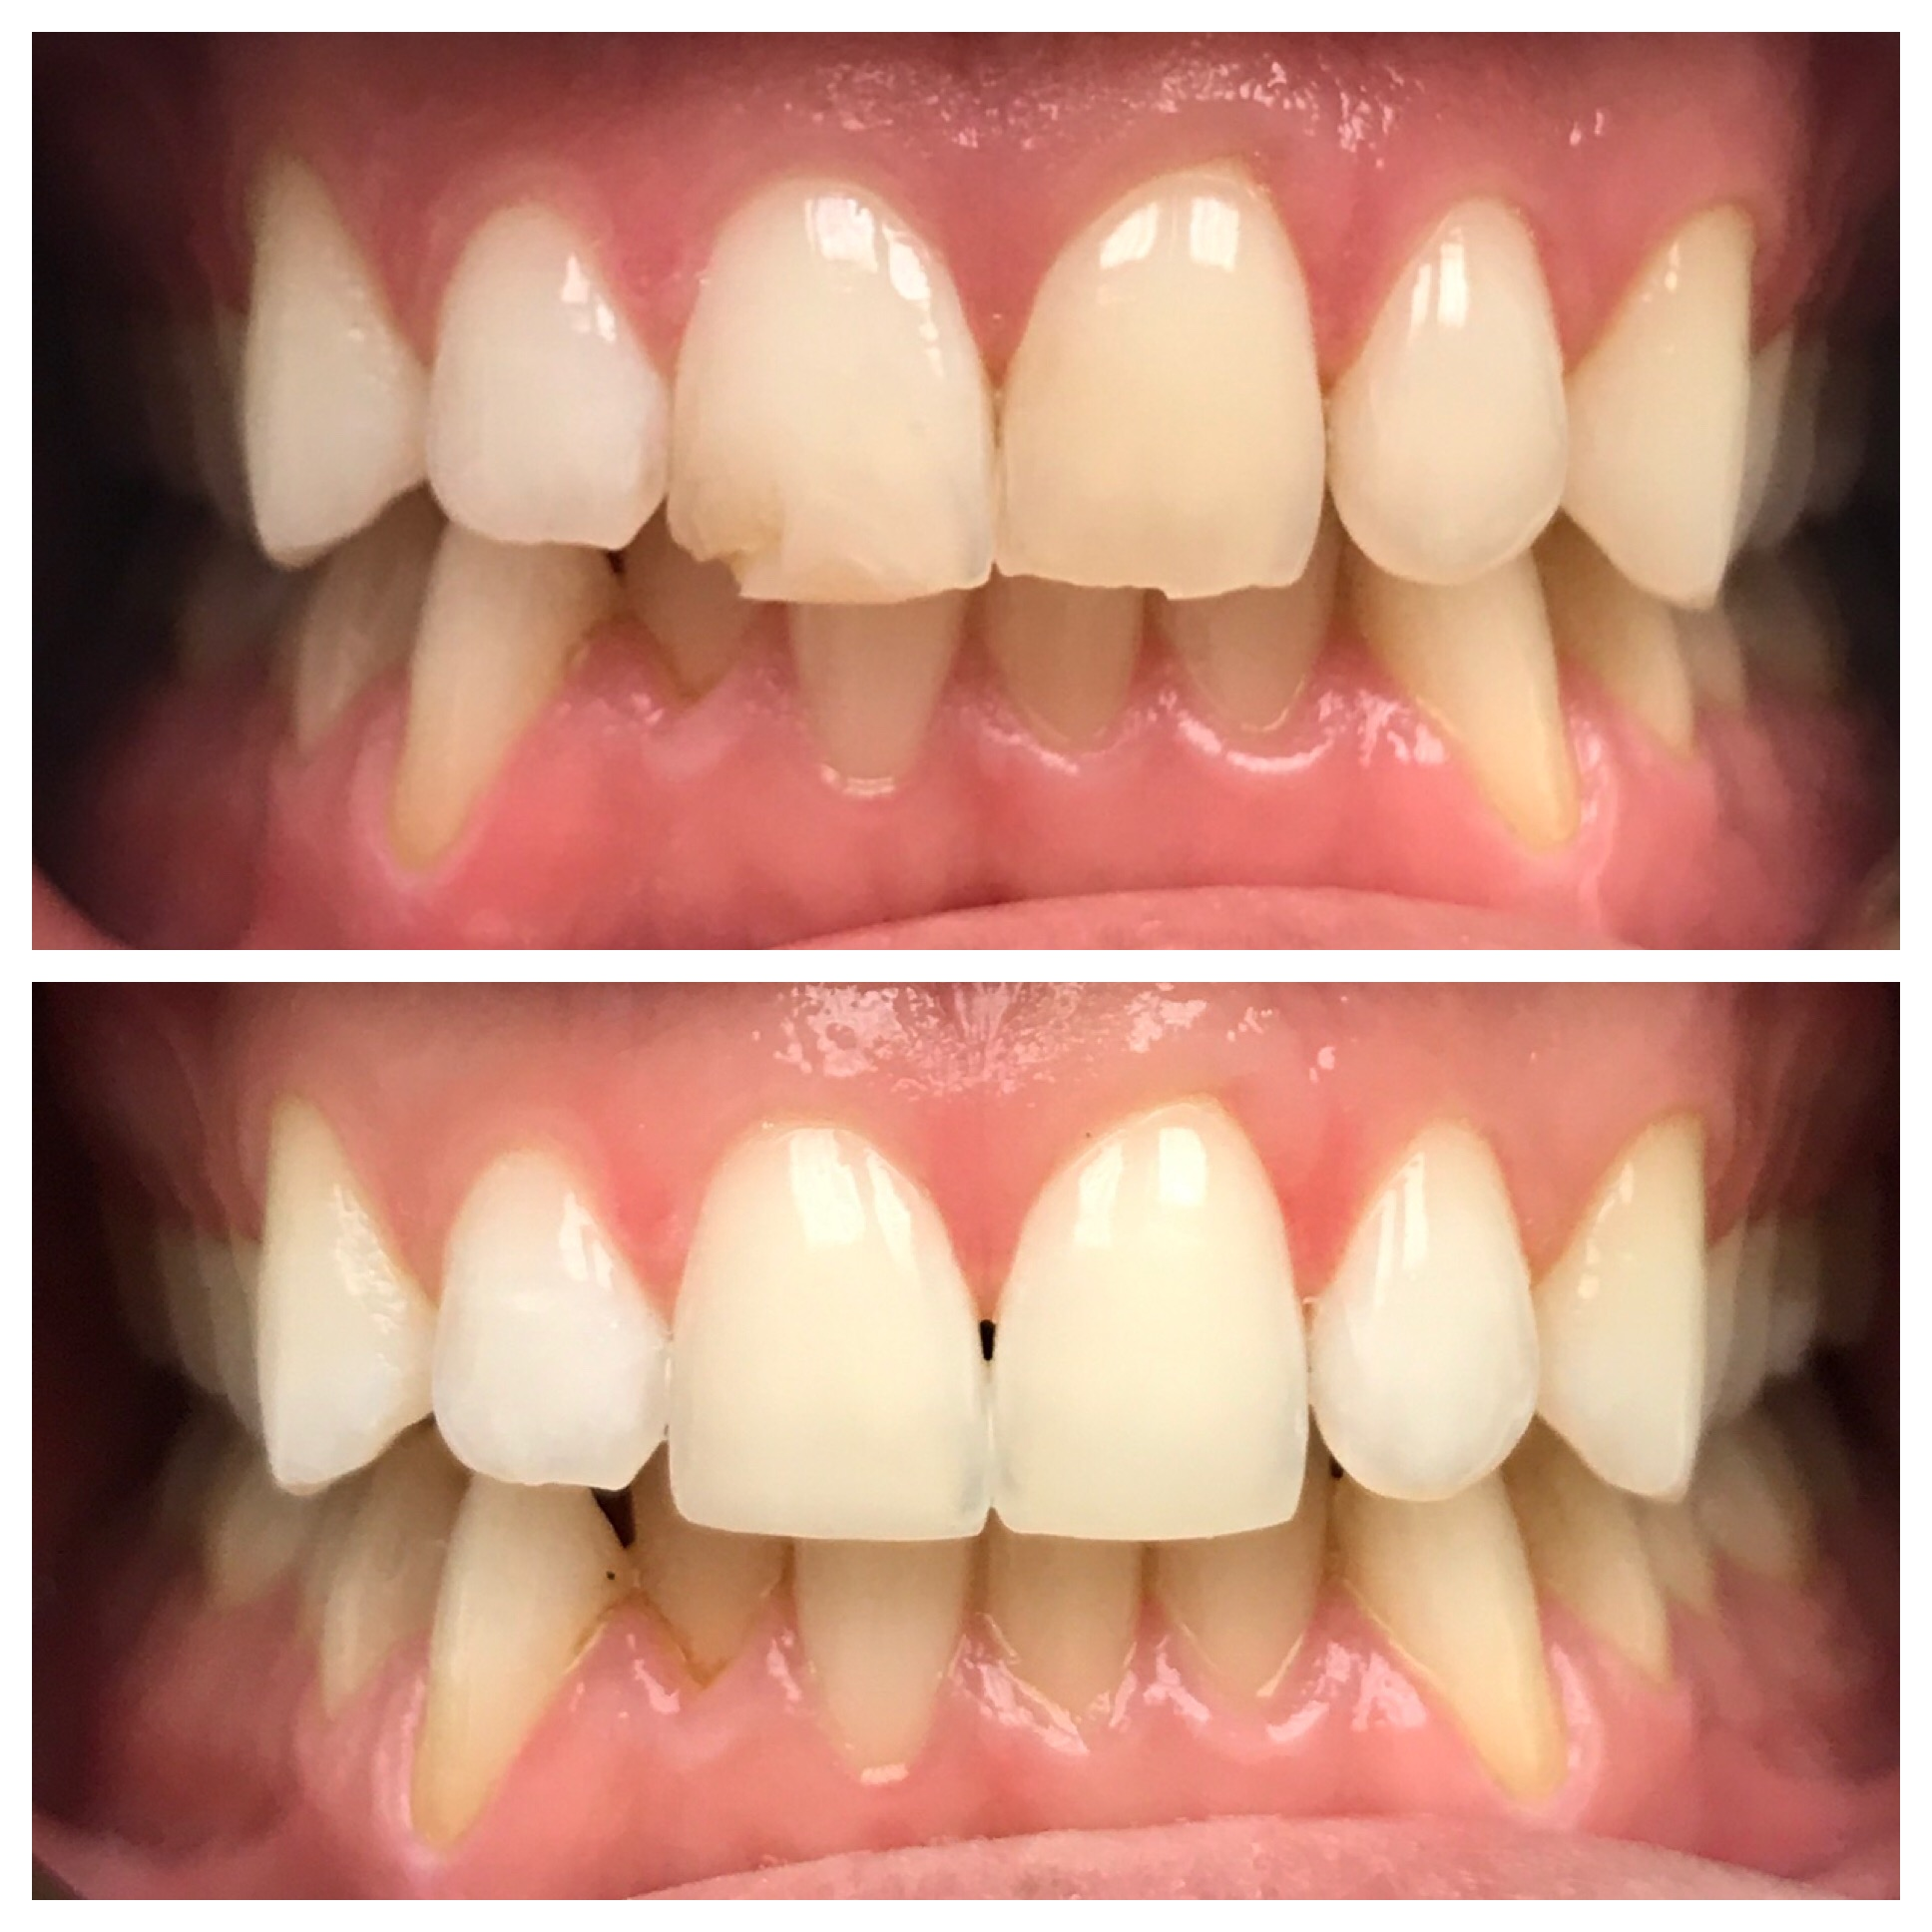 10-Two-bondings-to-restore-chipped-teeth-1